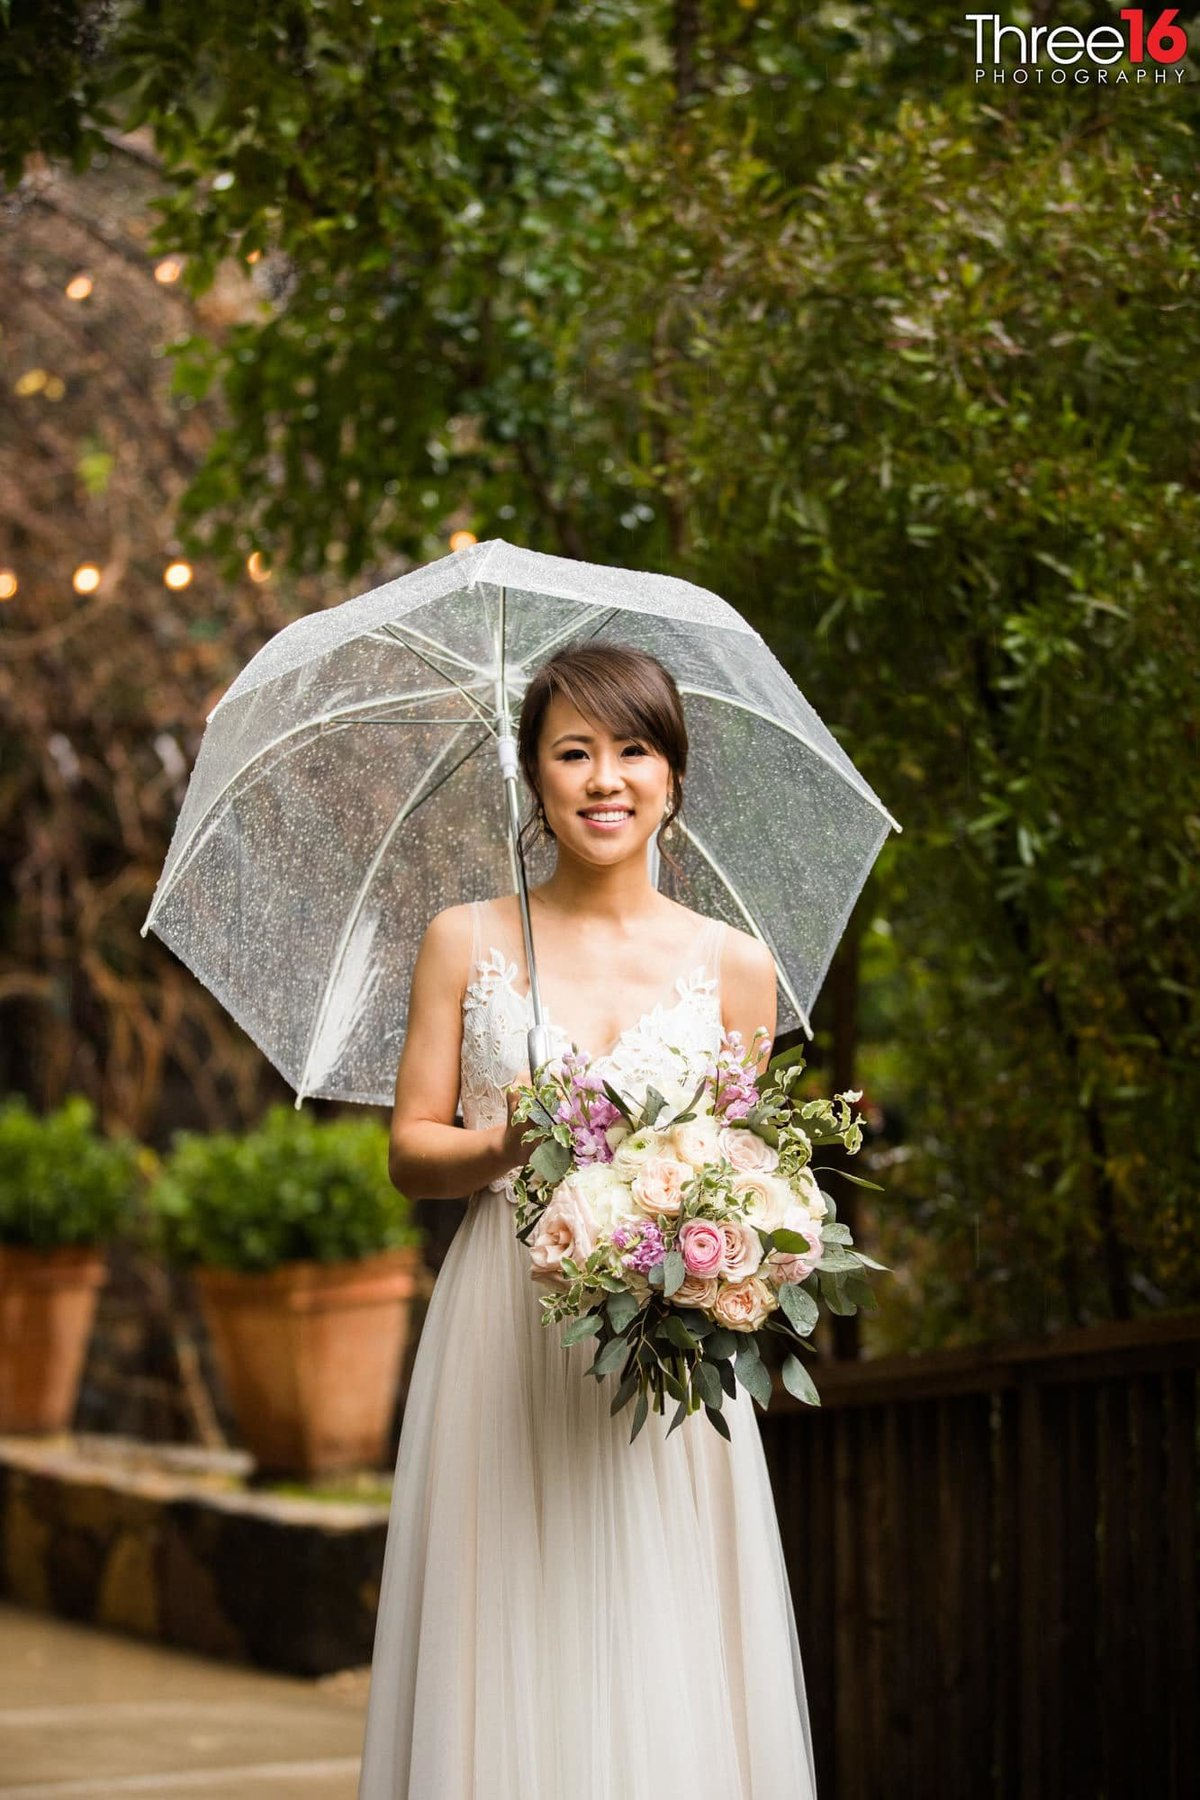 Bride posing with an umbrella and beautiful bouquet of flowers